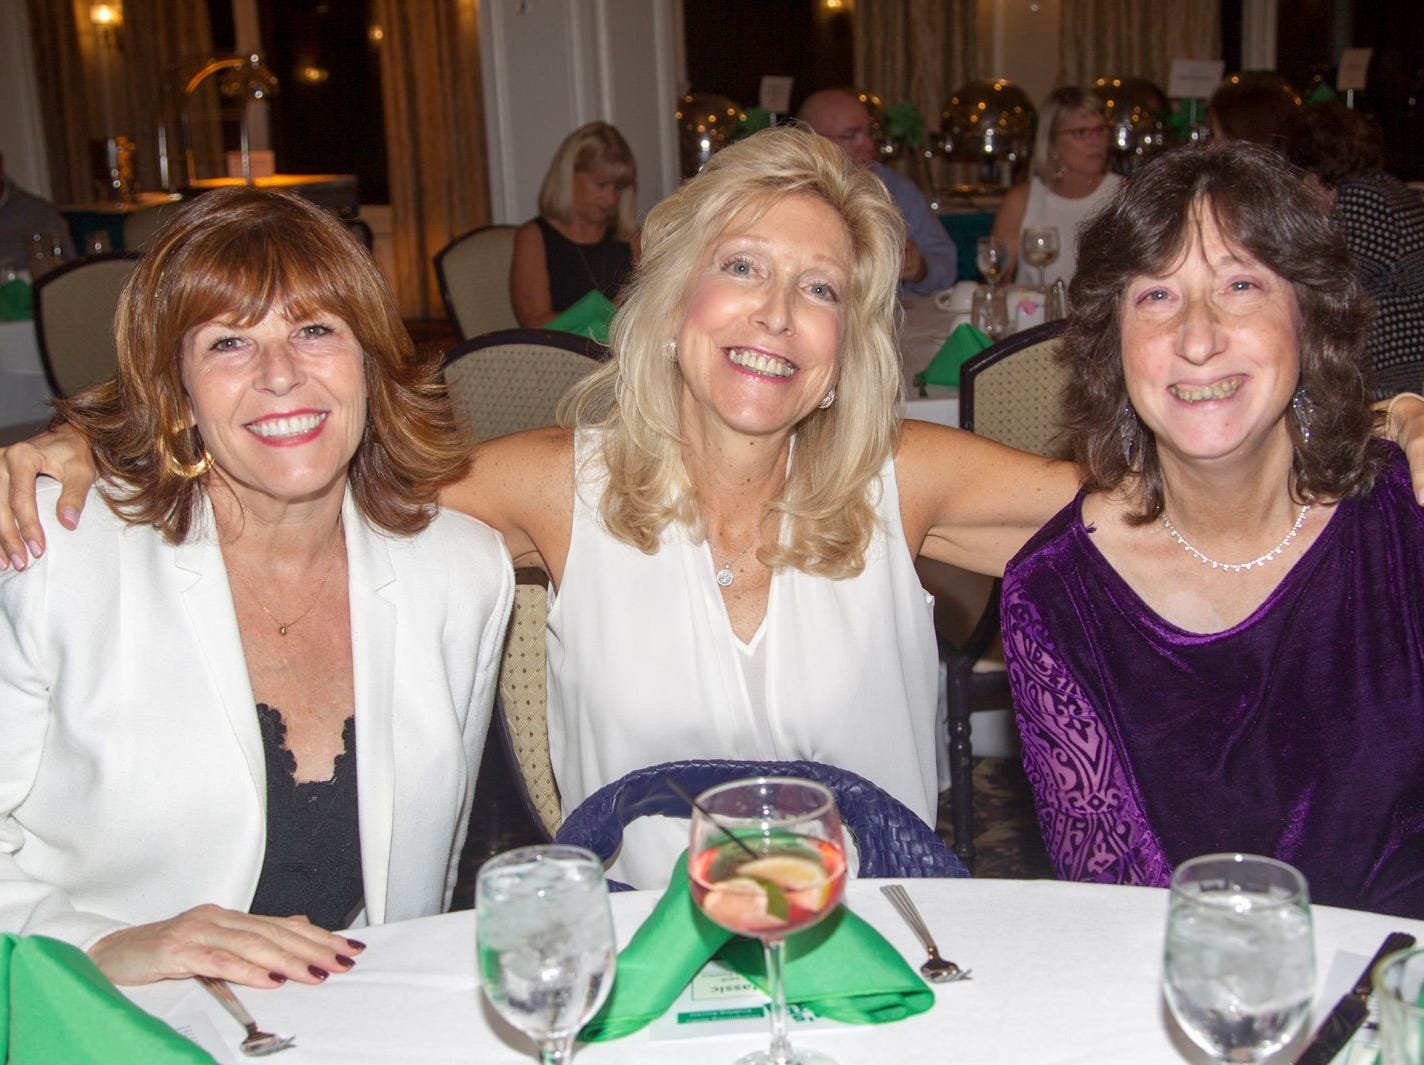 Elizabeth Clifford, Jeanne Buesser, Roni Rantzer. Ken's Krew Golf Outing at White Beeches Country Club in Haworth. Ken's Krew provides vocational training and job placement services for young adults with intellectual and developmental disabilities. 10/09/2018